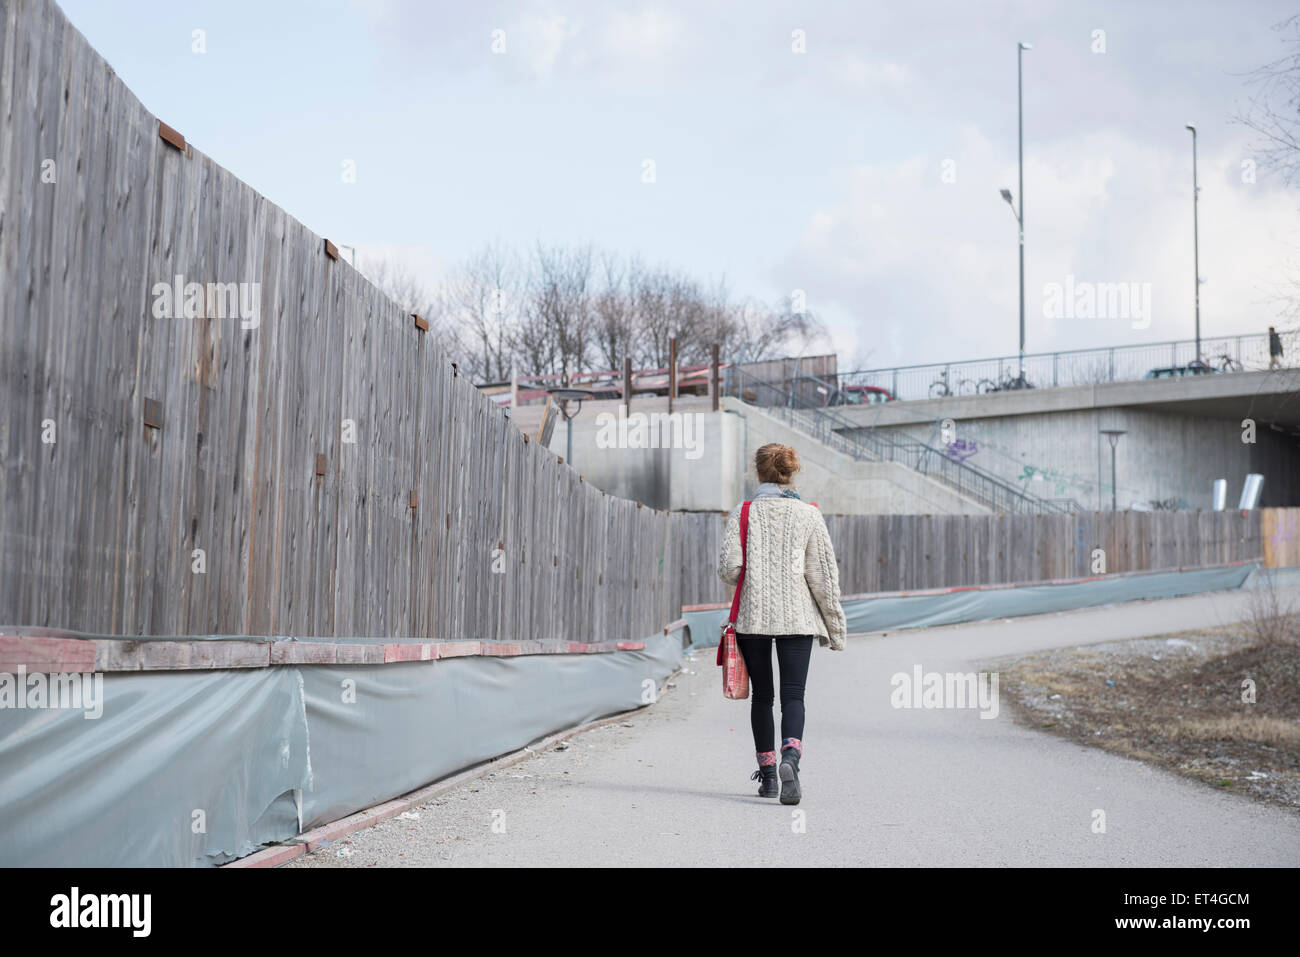 Rear view of a young woman walking along construction site fence on road Munich Bavaria Germany - Stock Image